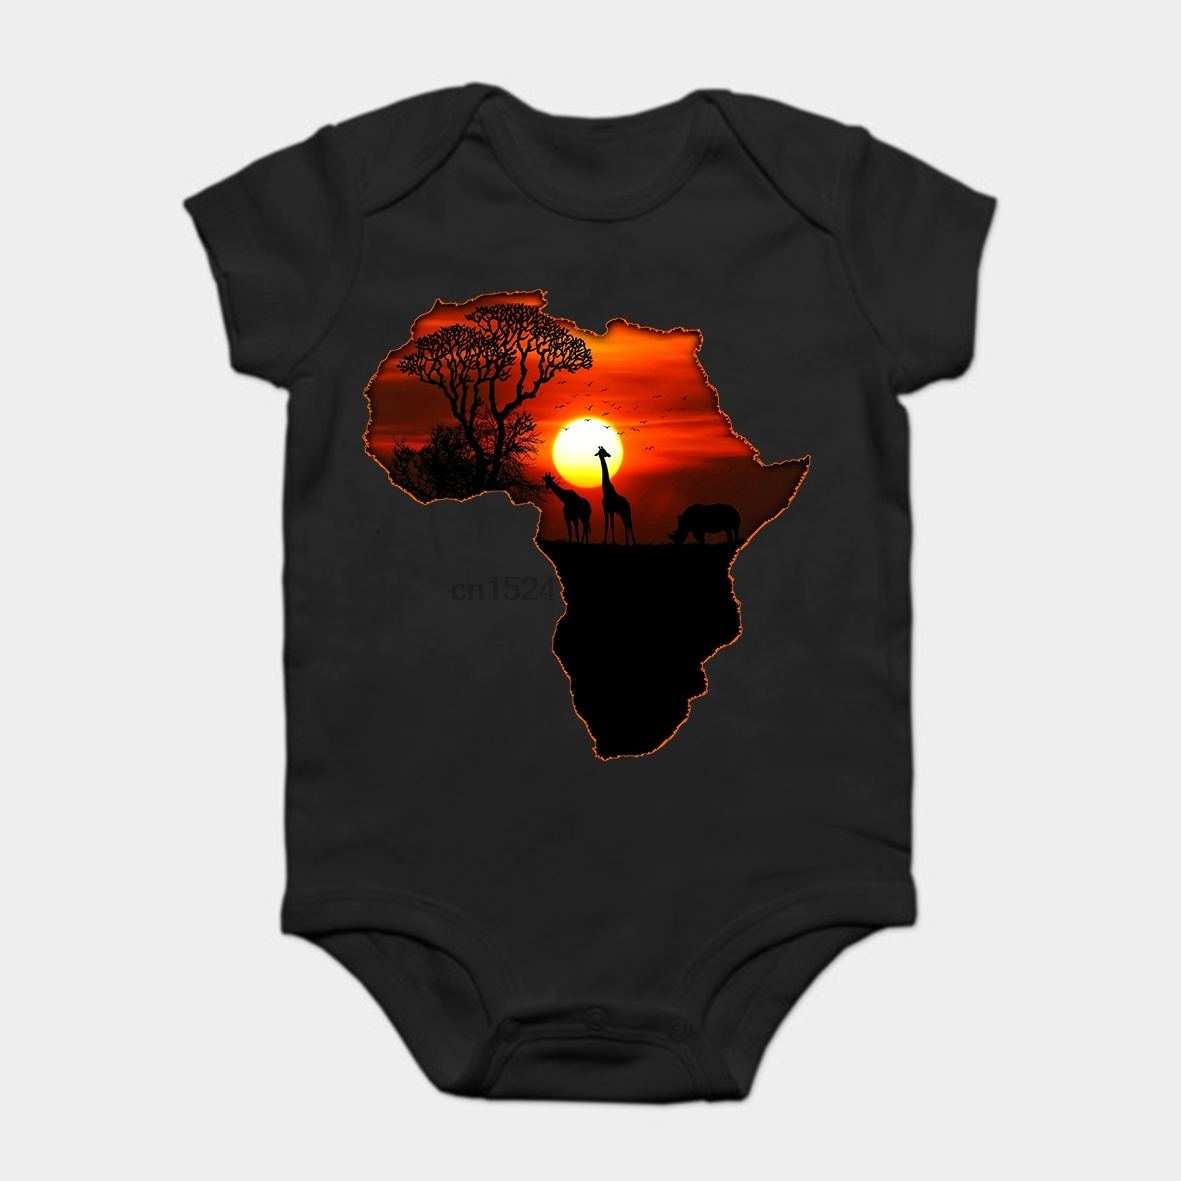 Kid Map Of Africa.Baby Onesie Baby Bodysuits Kid T Shirt Funny Novelty Africa Map Of